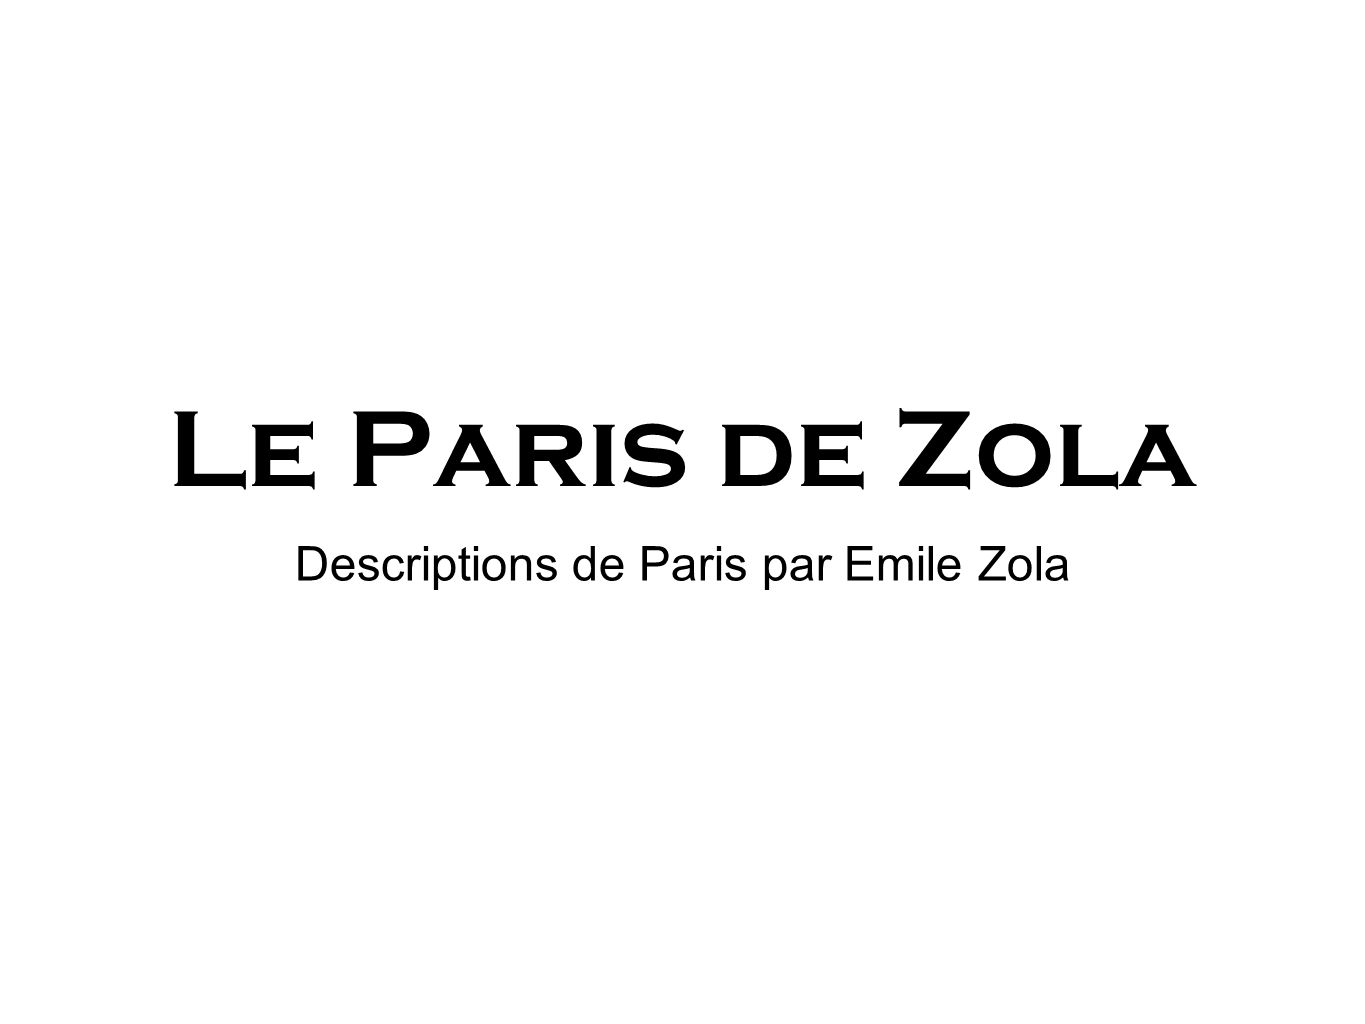 Descriptions de Paris par Emile Zola